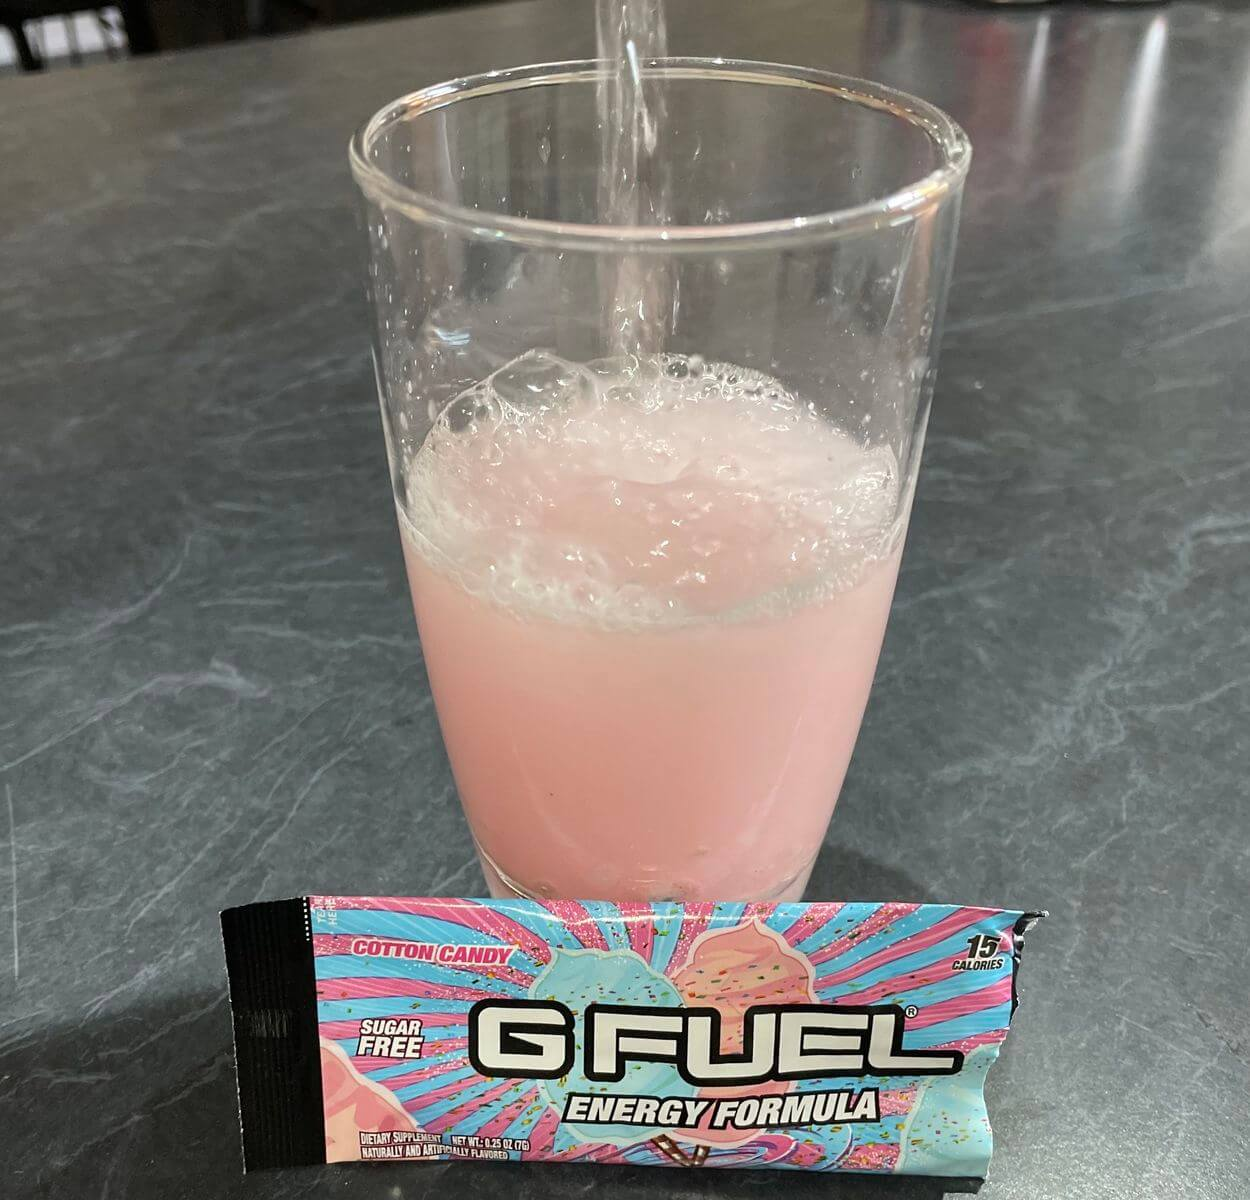 Cotton Candy G Fuel flavor mixed in a glass